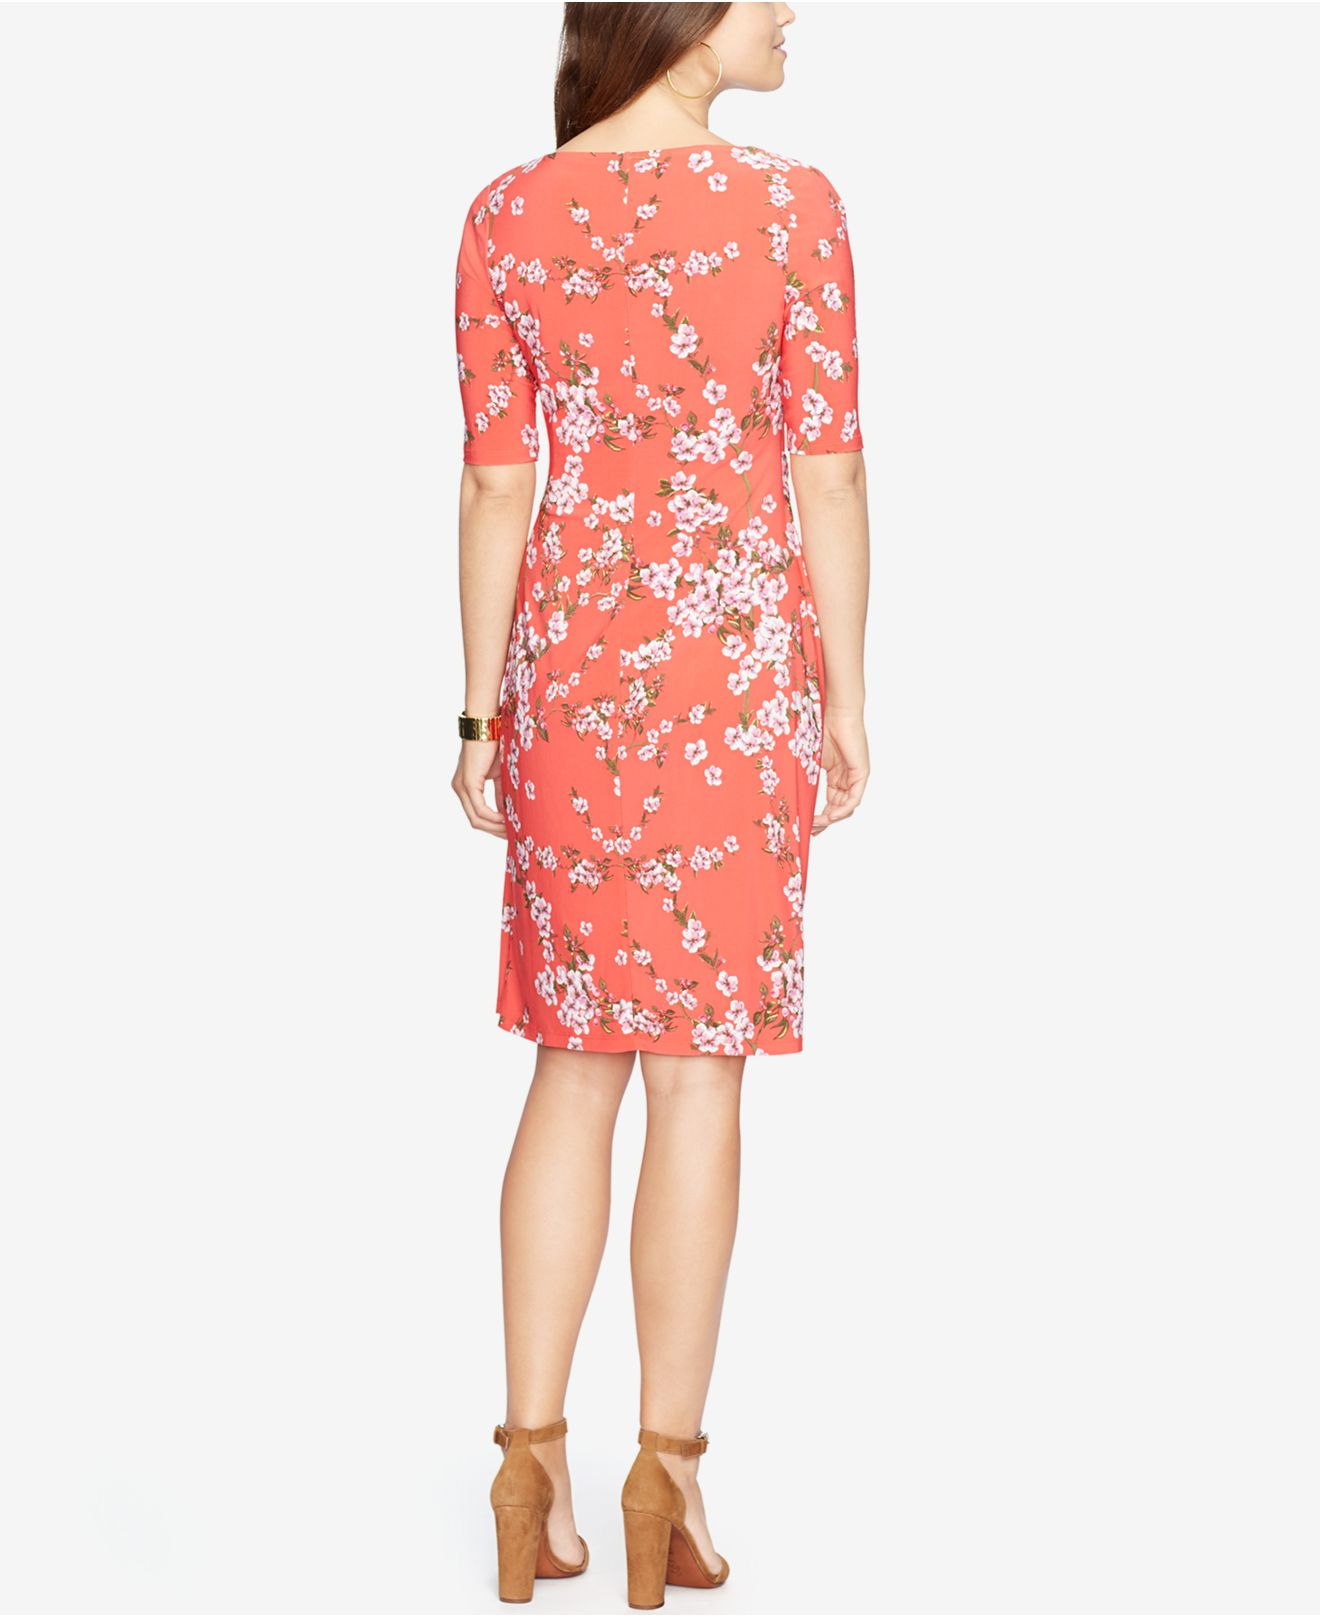 American Living Floral Print Jersey Dress In Red Lyst